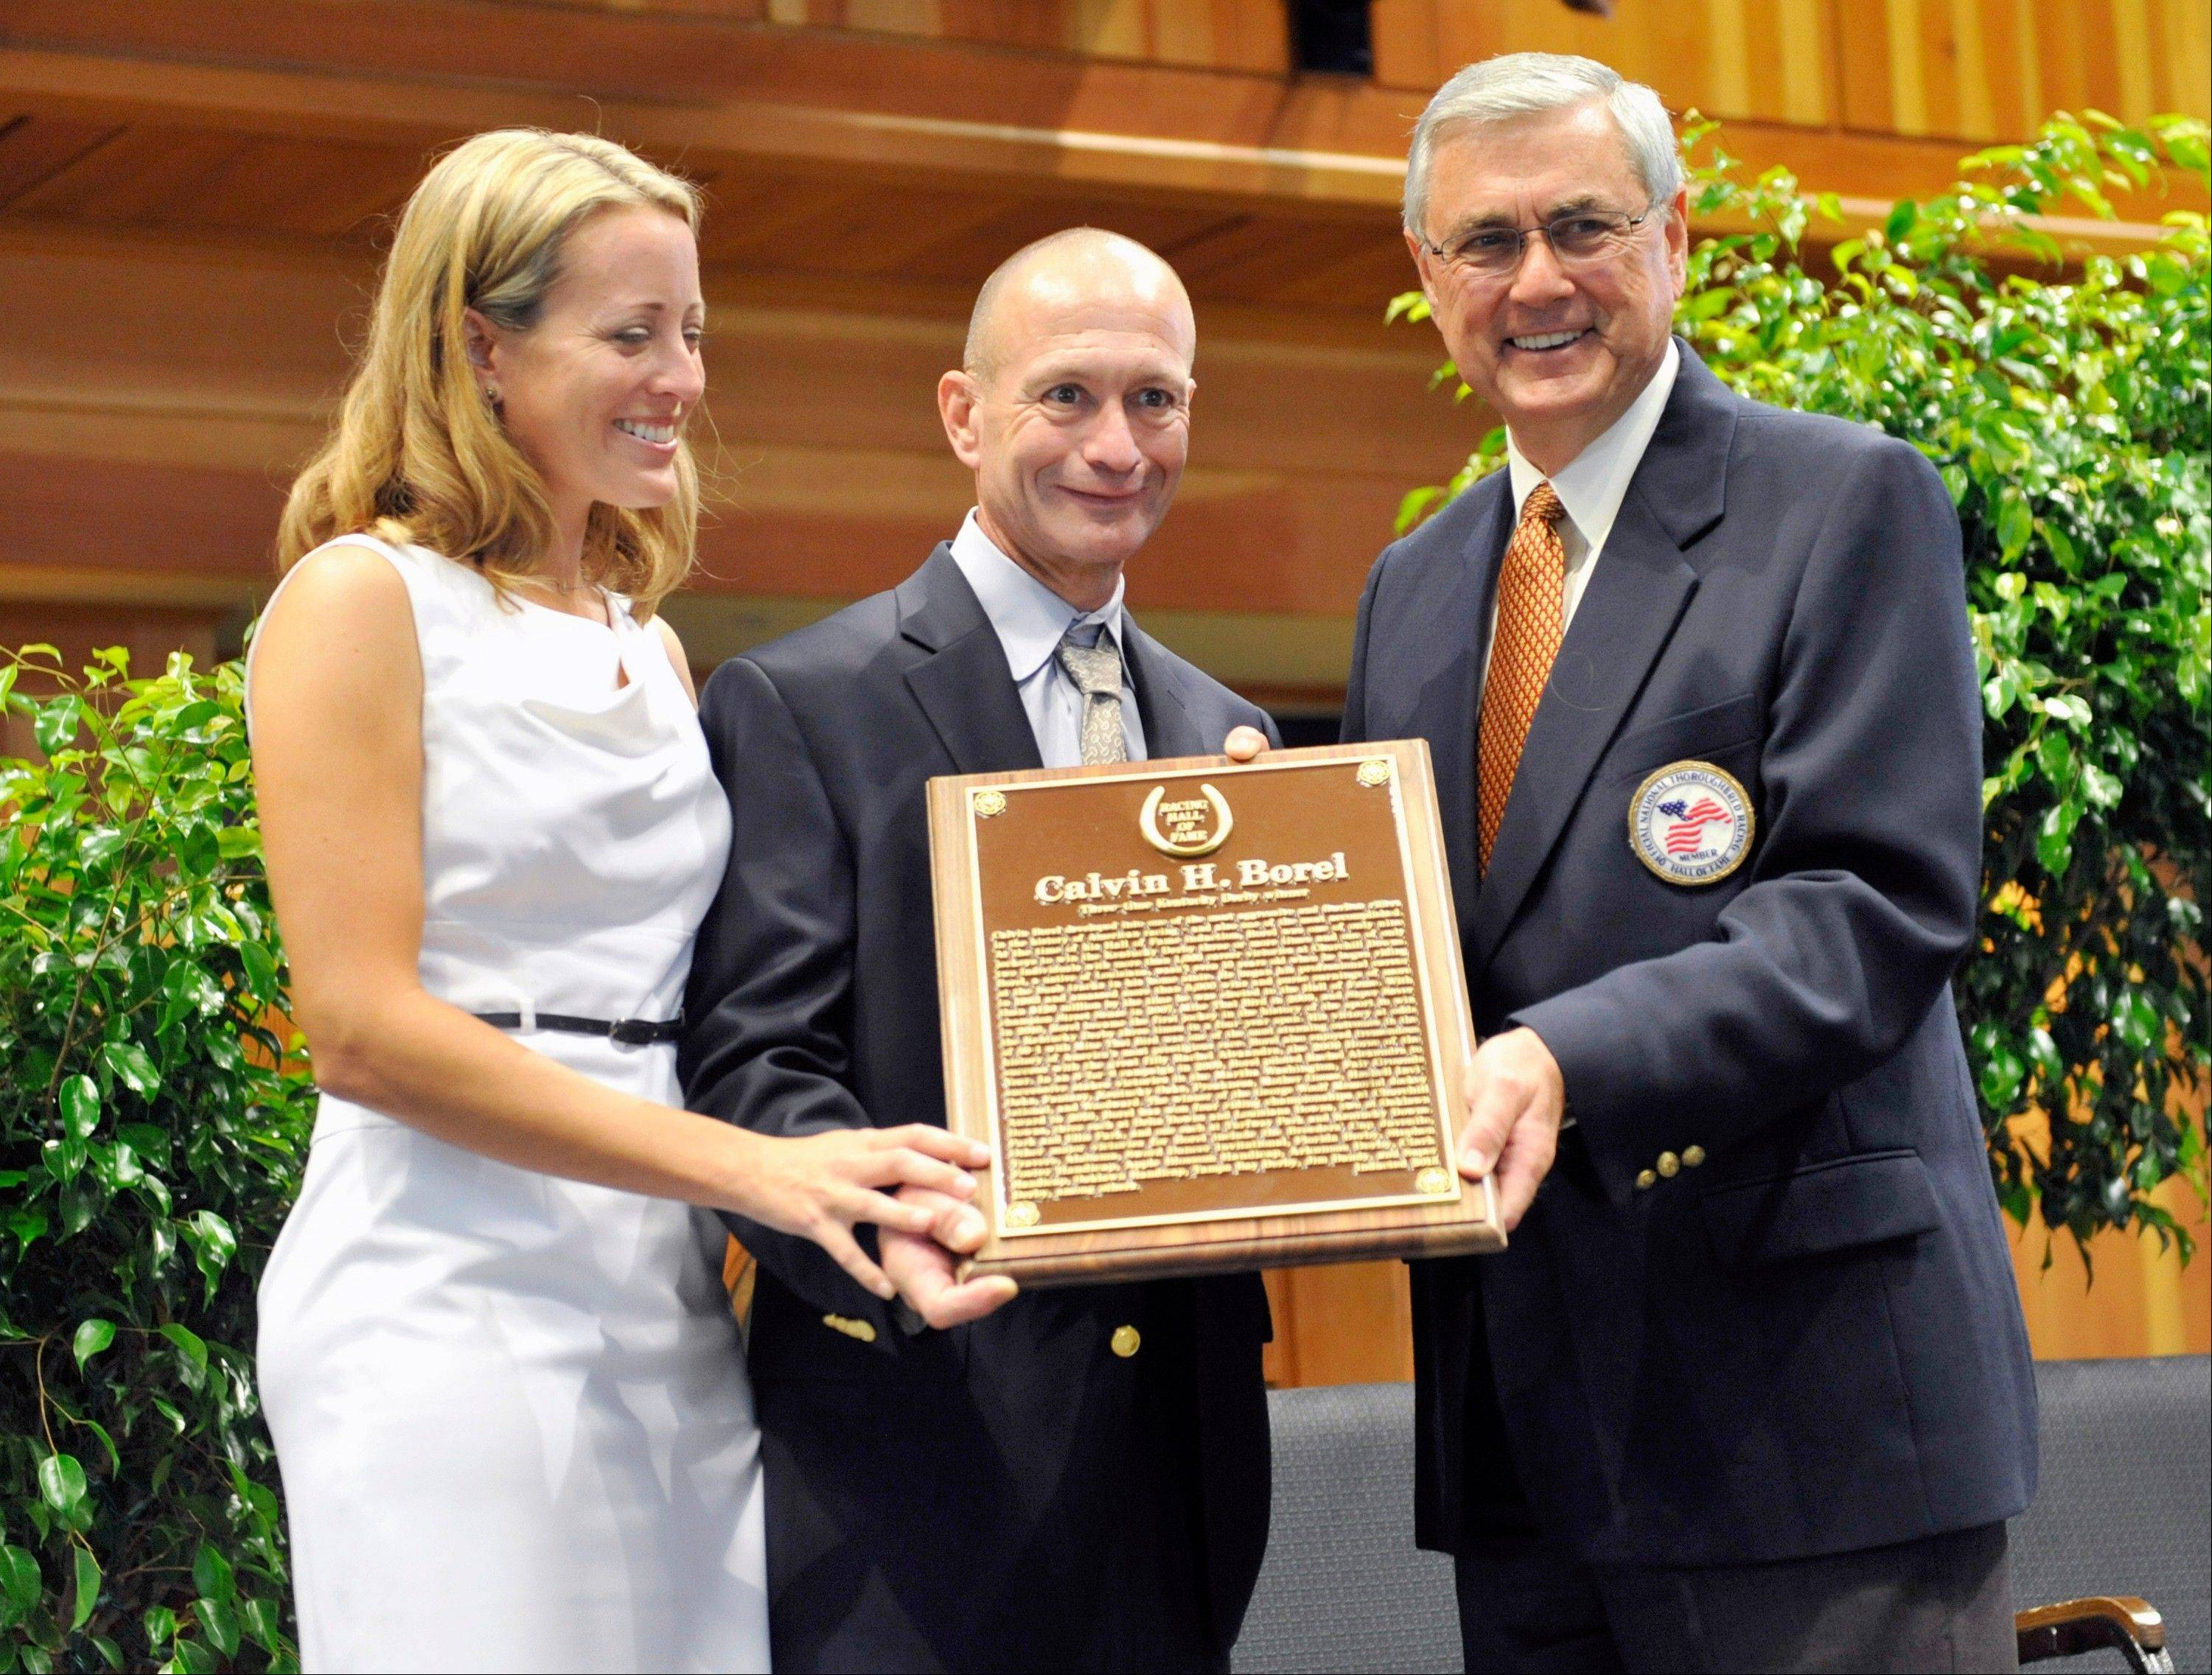 Lisa Borel ,left, stands with her husband Inductee Calvin Borel as he is presented with his plaque by fellow Hall of Fame trainer Carl Zafzger, right, during the National Museum of Racing's Hall of Fame induction ceremony at the Fasig-Tipton Humphrey S. Finney Pavilion in Saratoga Springs, N.Y., Friday Aug. 9, 2013. (AP Photo/Hans Pennink)